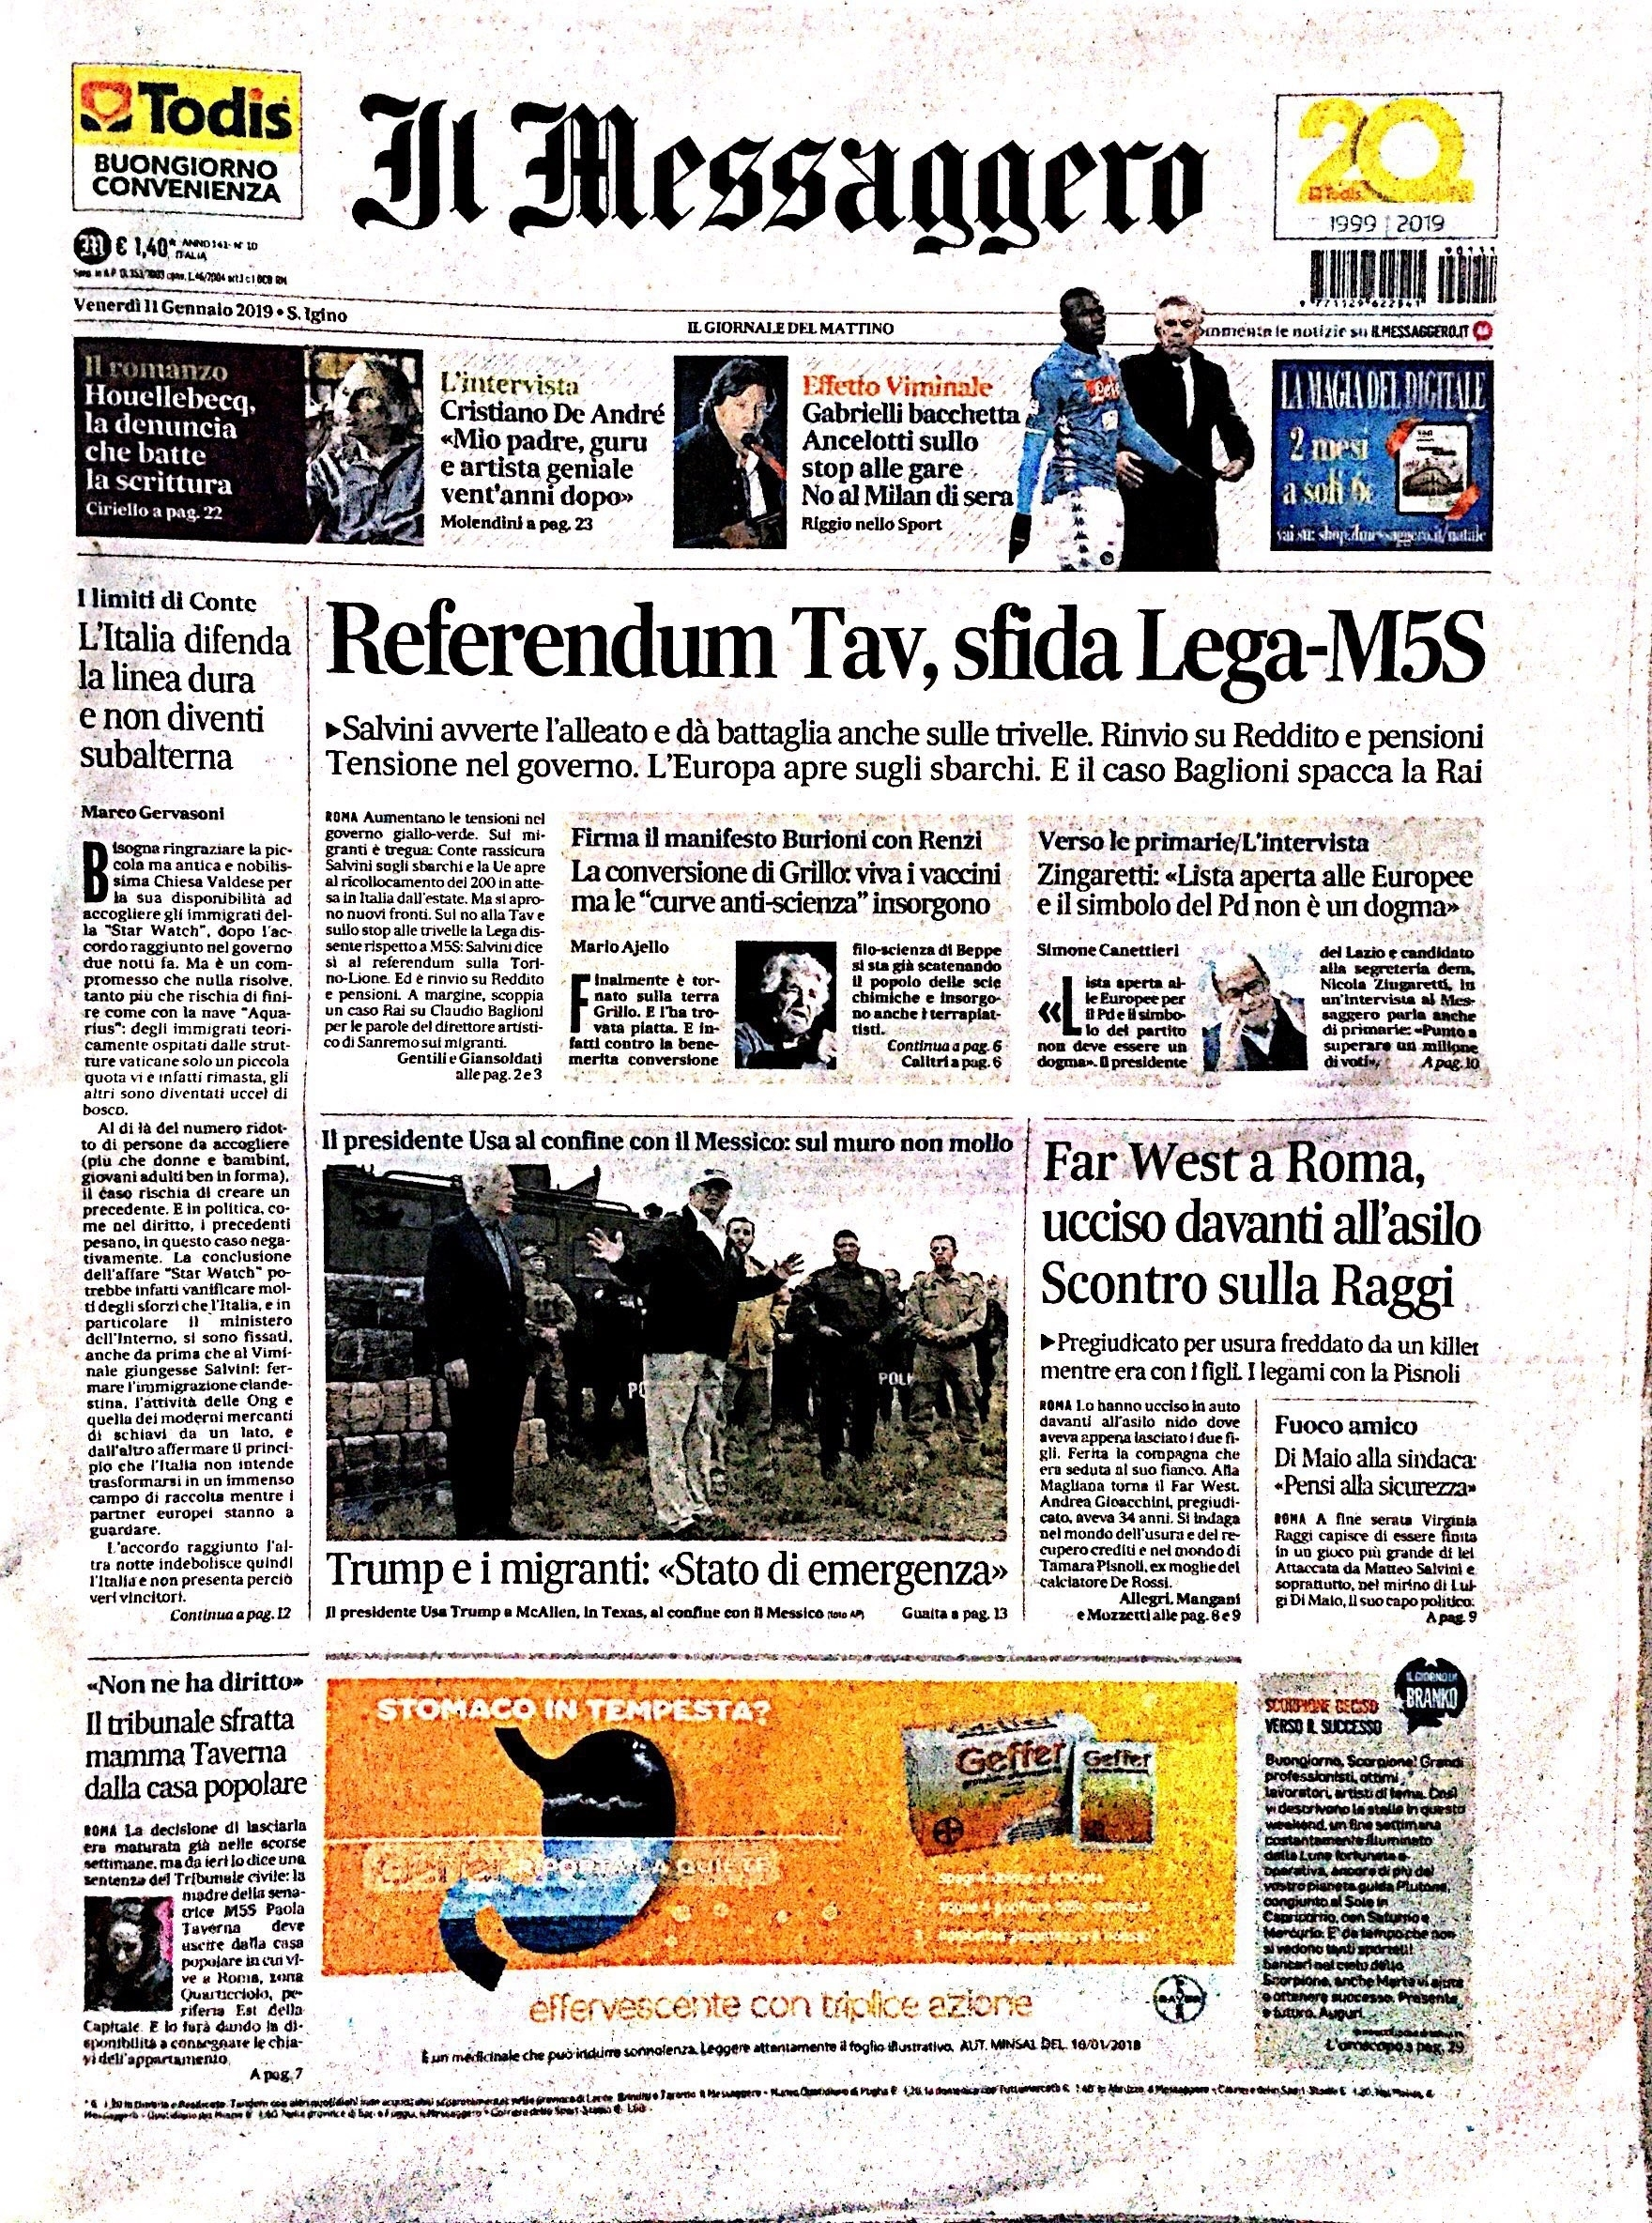 Il Messaggero January 2019